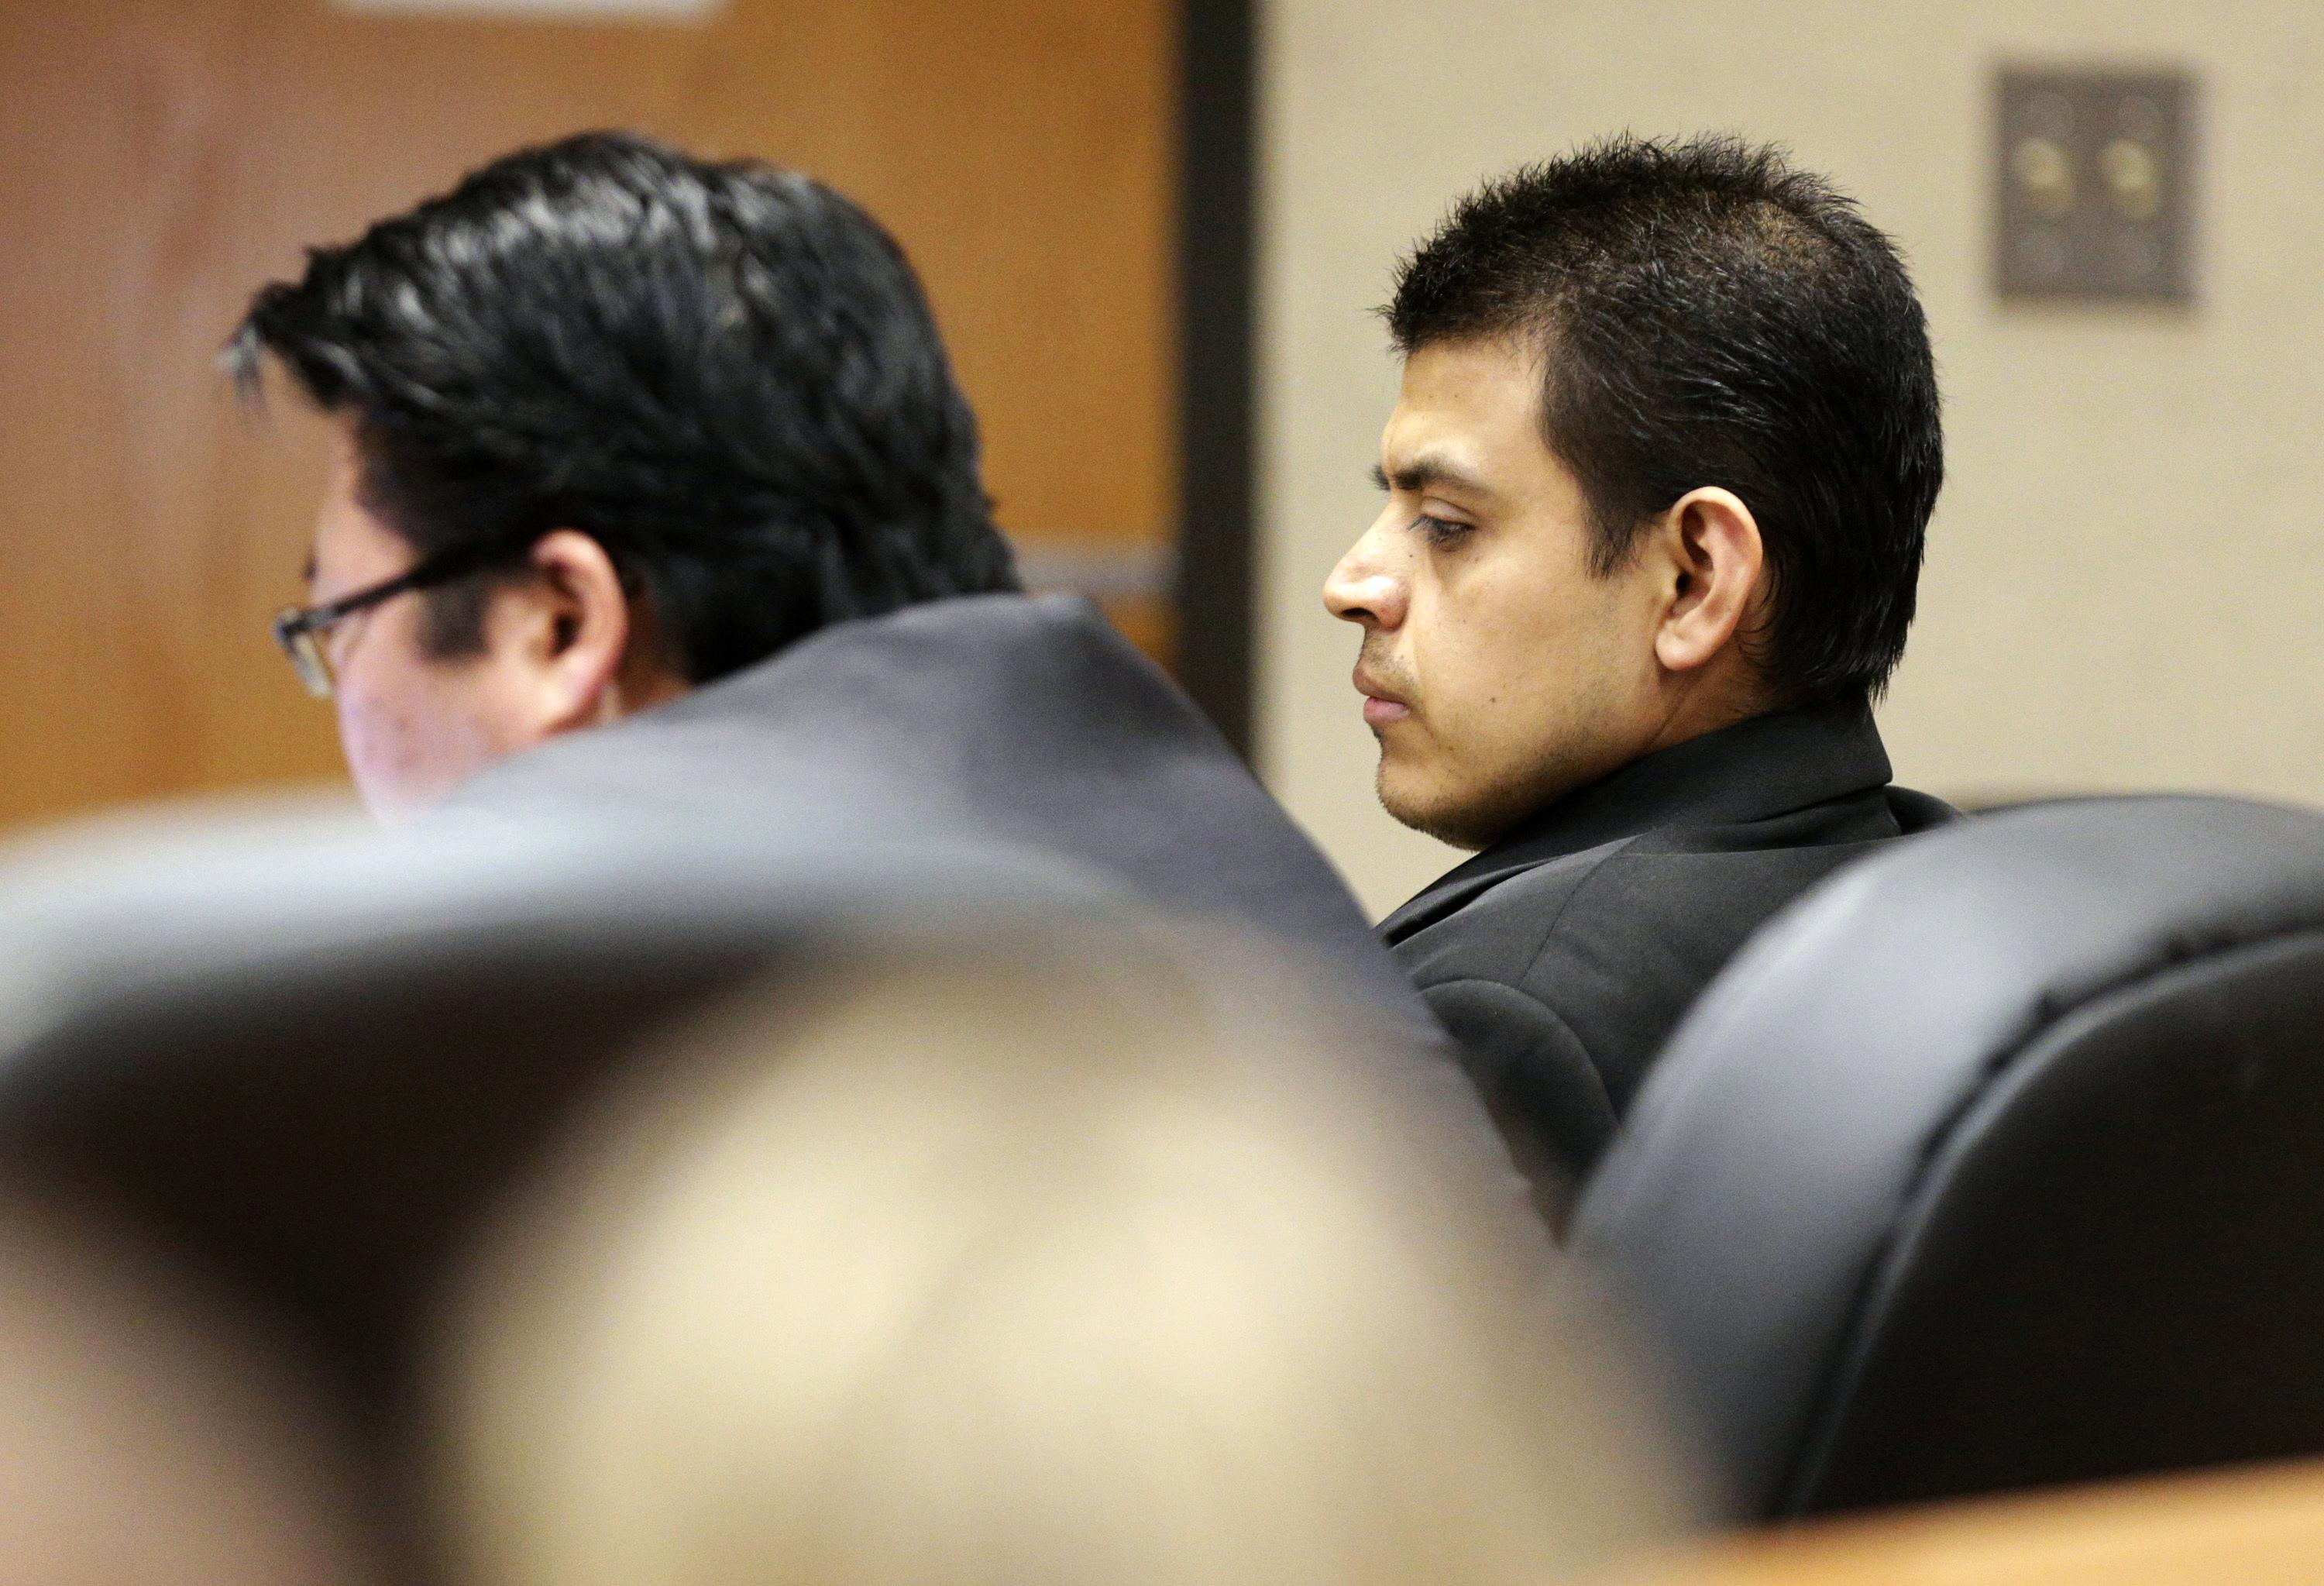 Oregon college safety officer pleads guilty to killing woman